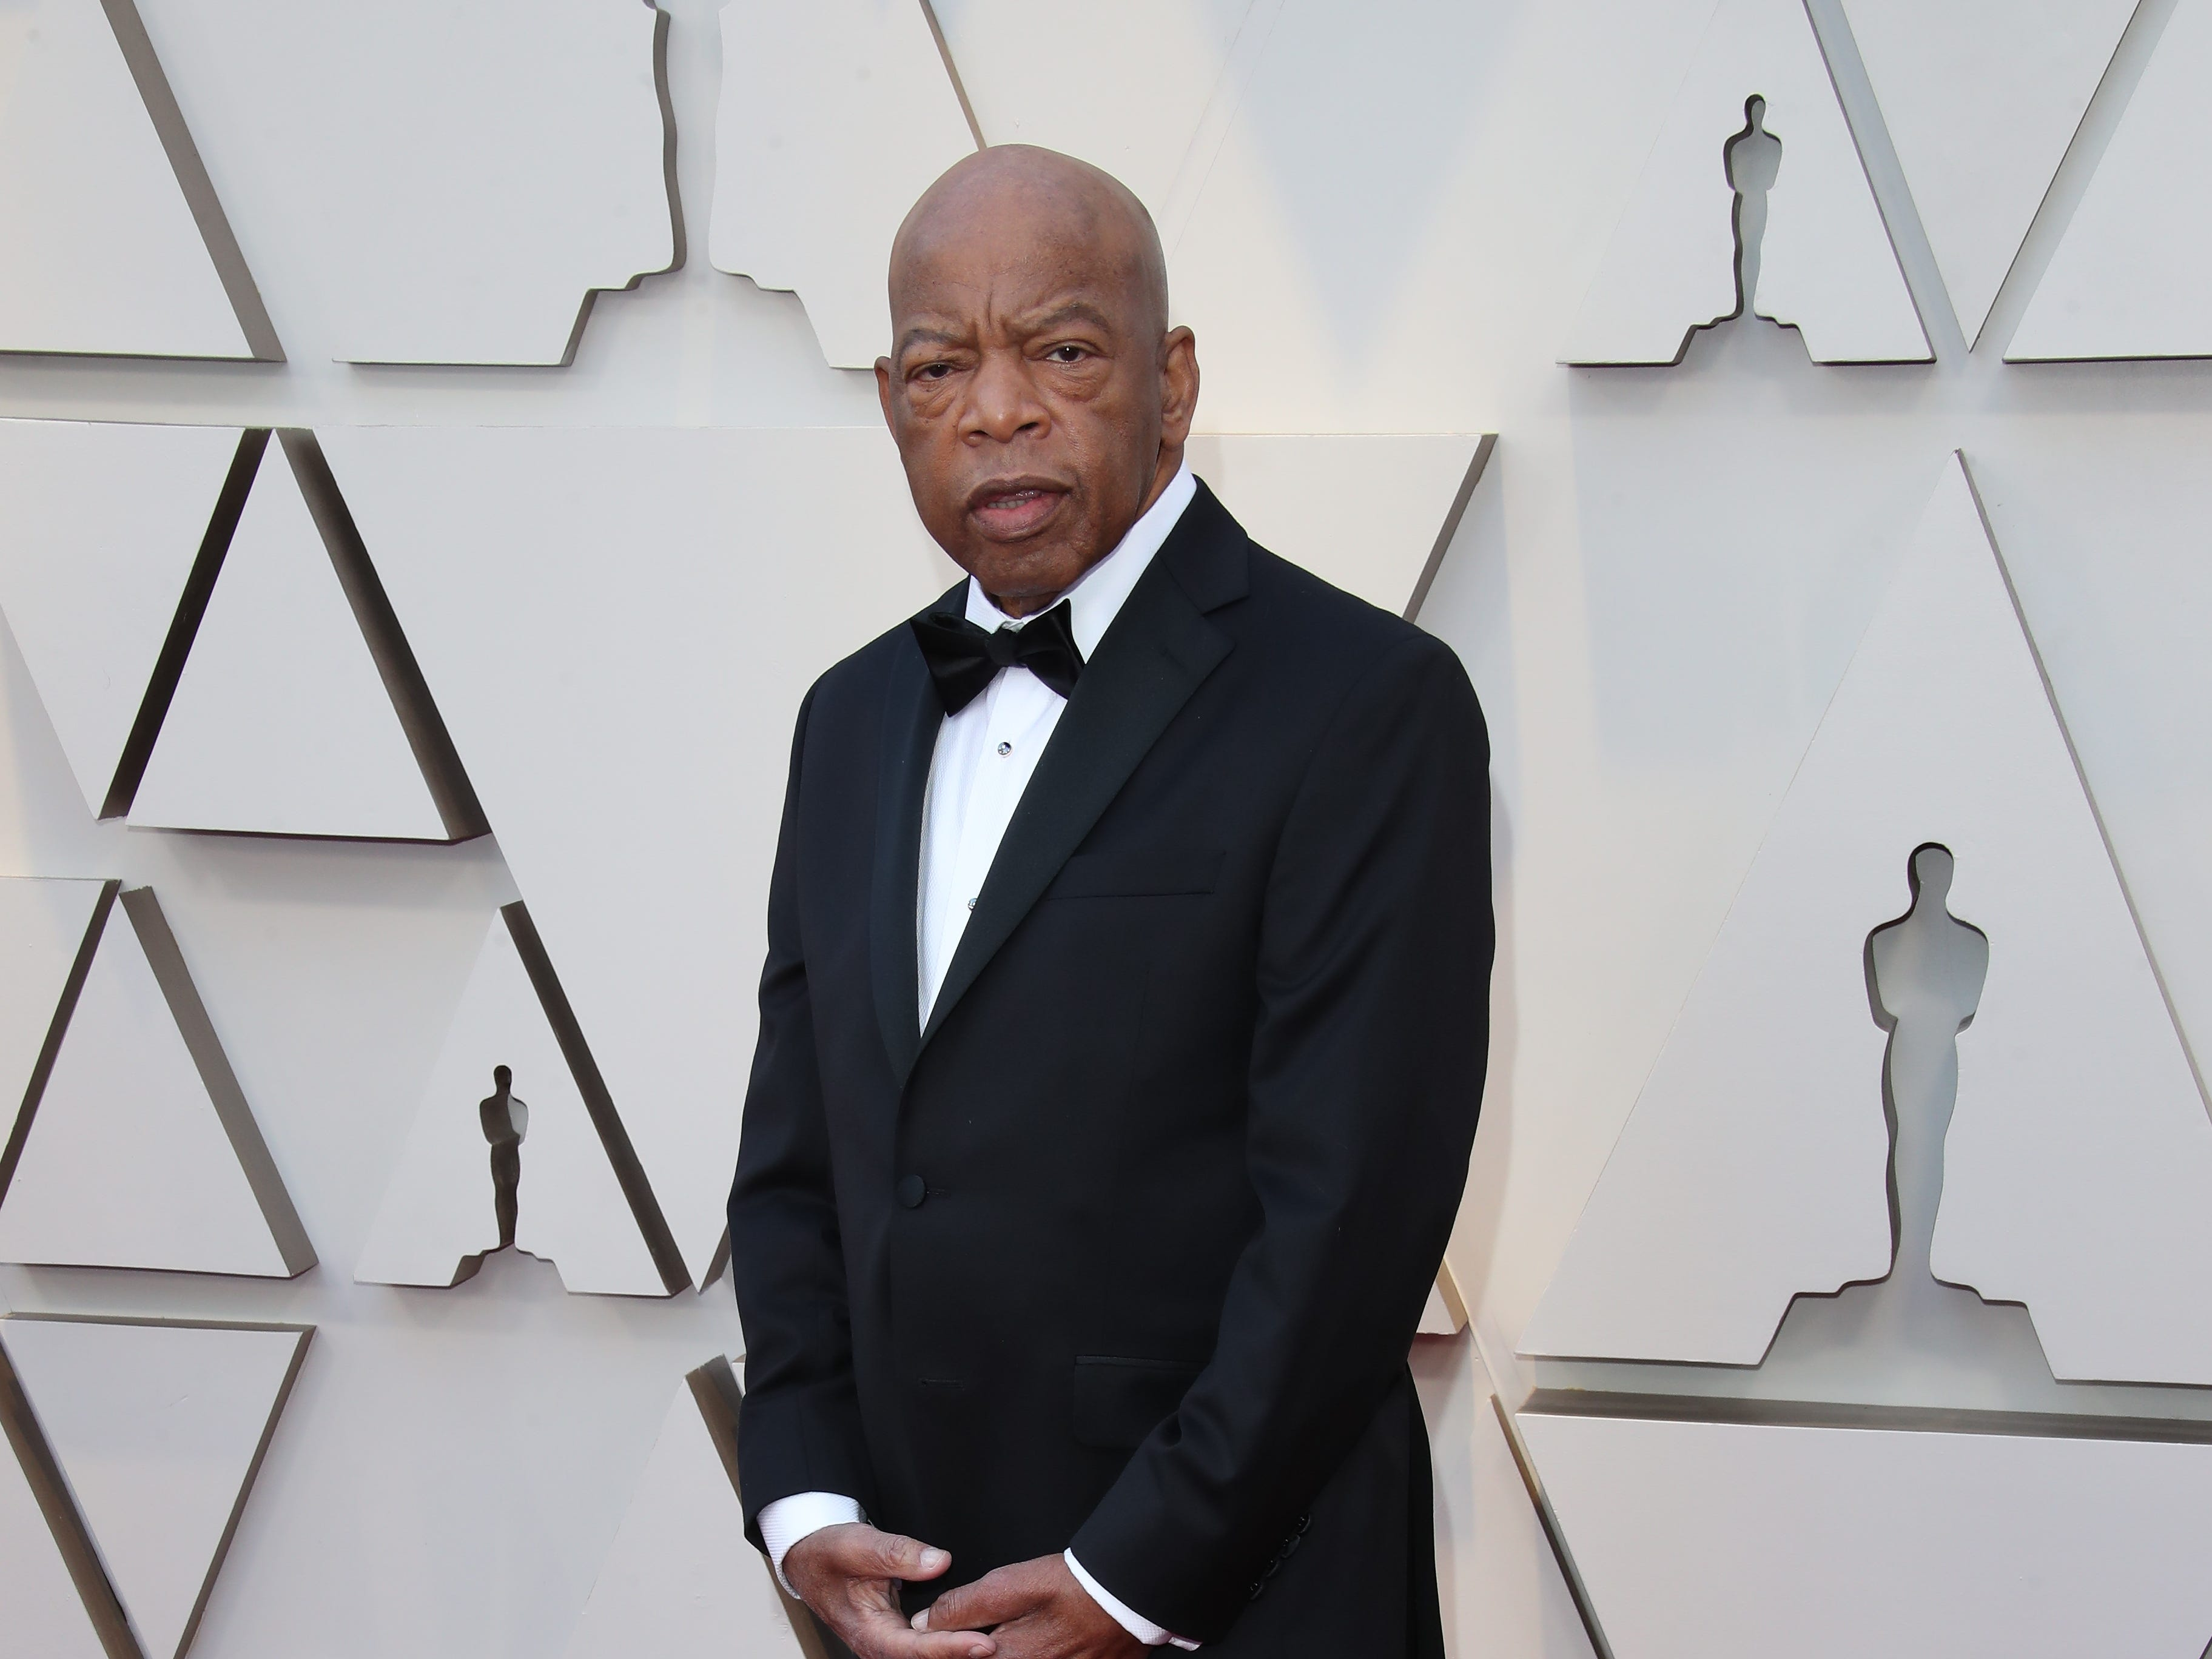 February 24, 2019; Los Angeles, CA, USA; Congressman John Lewis arrives at the 91st Academy Awards at the Dolby Theatre. Mandatory Credit: Dan MacMedan-USA TODAY NETWORK (Via OlyDrop)